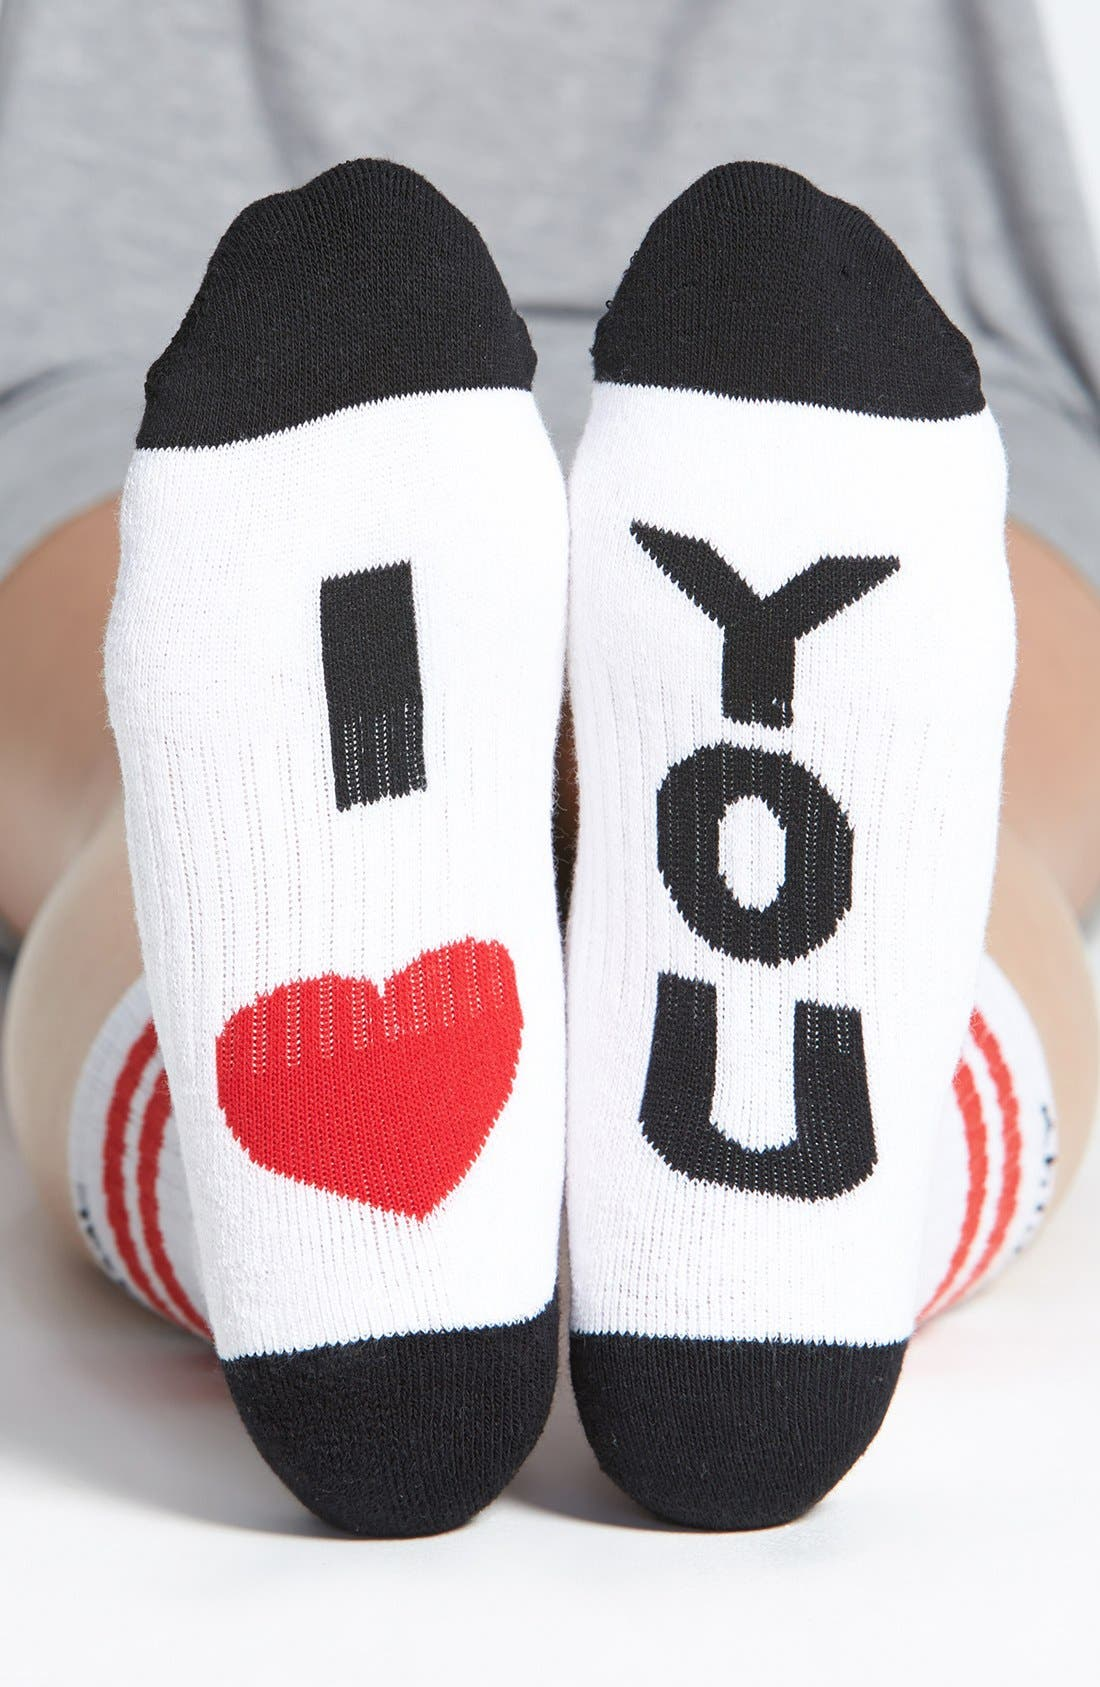 Alternate Image 1 Selected - Arthur George by R. Kardashian 'I Love You' Socks